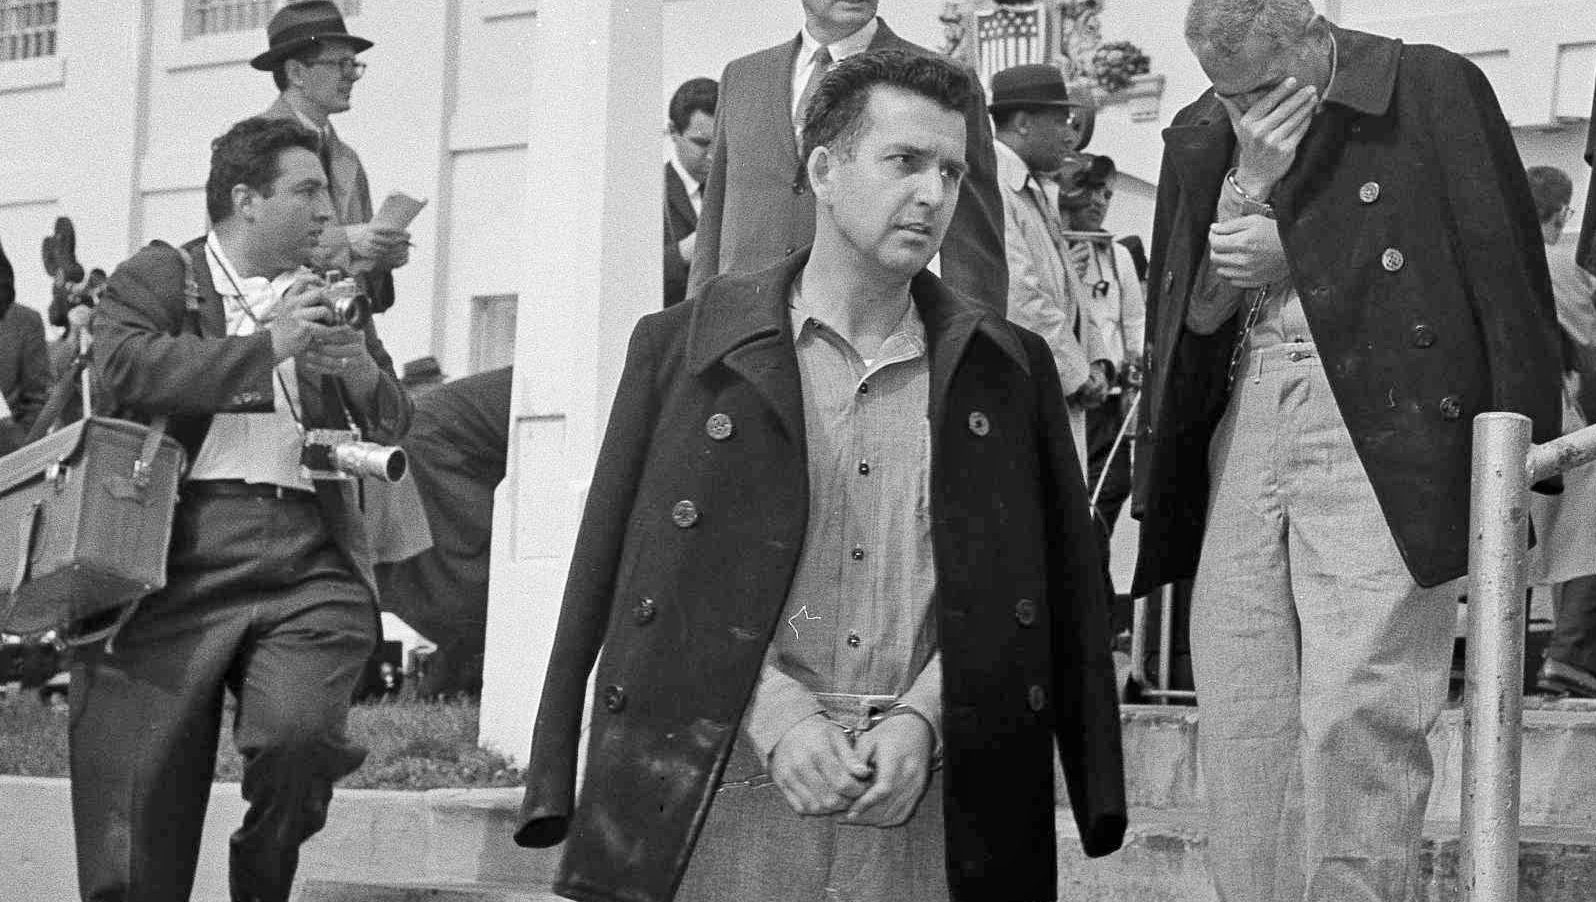 """Some of the 27 prisoners removed from Alcatraz Prison are shown just before boarding the launch that brought them to the mainland for removal to other prisons, March 21, 1963. The removal of the last prisoners closed """"The Rock"""" as a federal prison for the nation's toughest criminals. Alcatraz, located in San Francisco Bay, was a federal penitentiary for 29 years and a prison for more than a century. Prisoners are all handcuffed and wear leg irons. (AP Photo/Robert W. Klein)"""